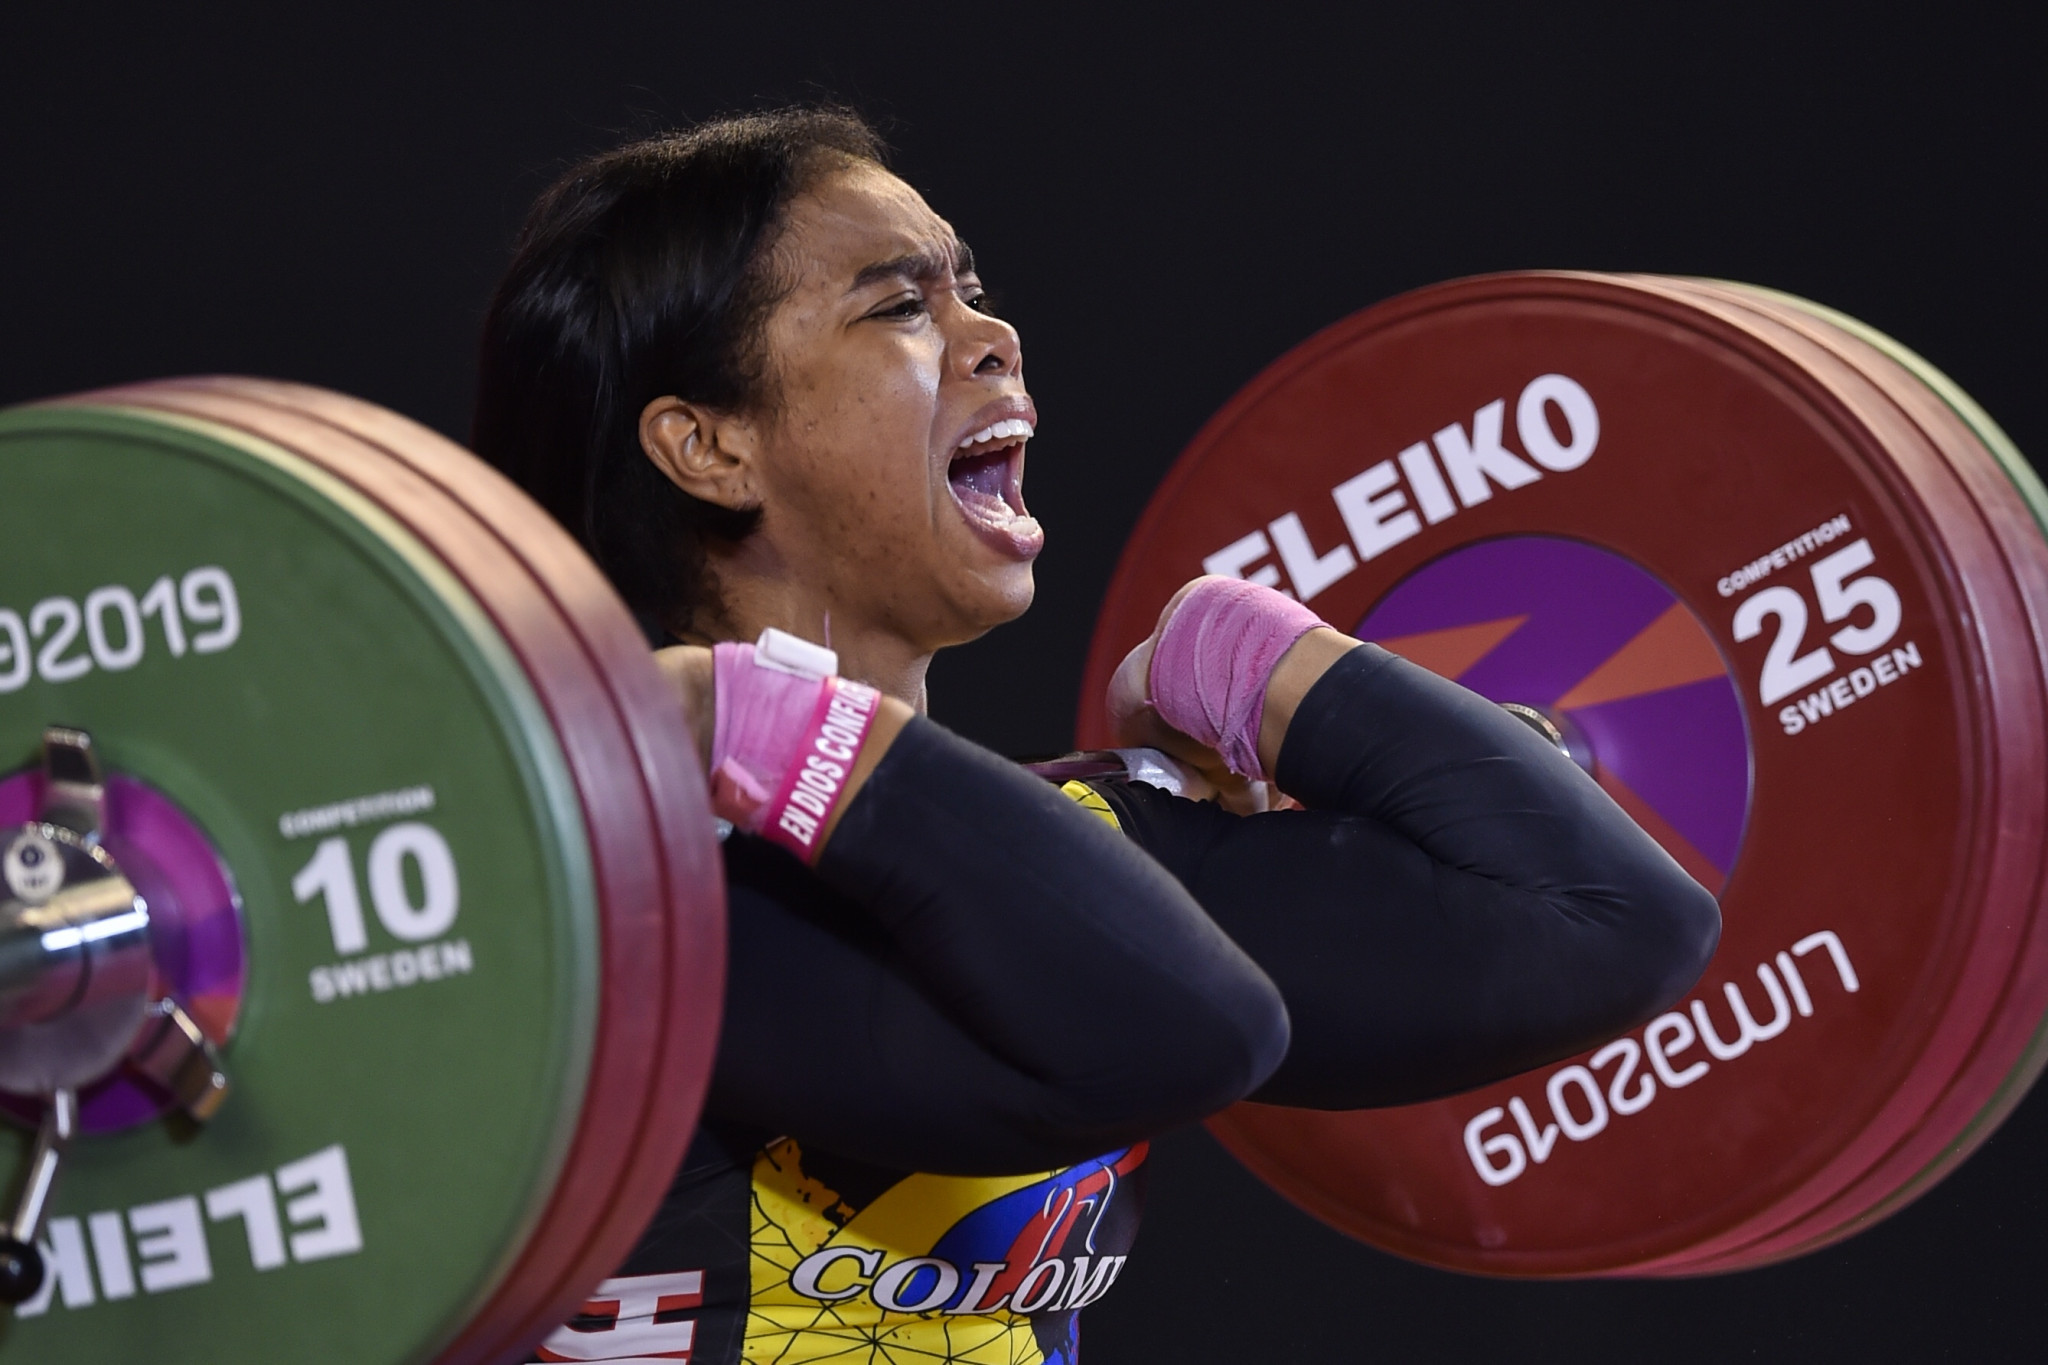 Leidy Solis won the 76kg event at the IWF Grand Prix in Lima ©Getty Images